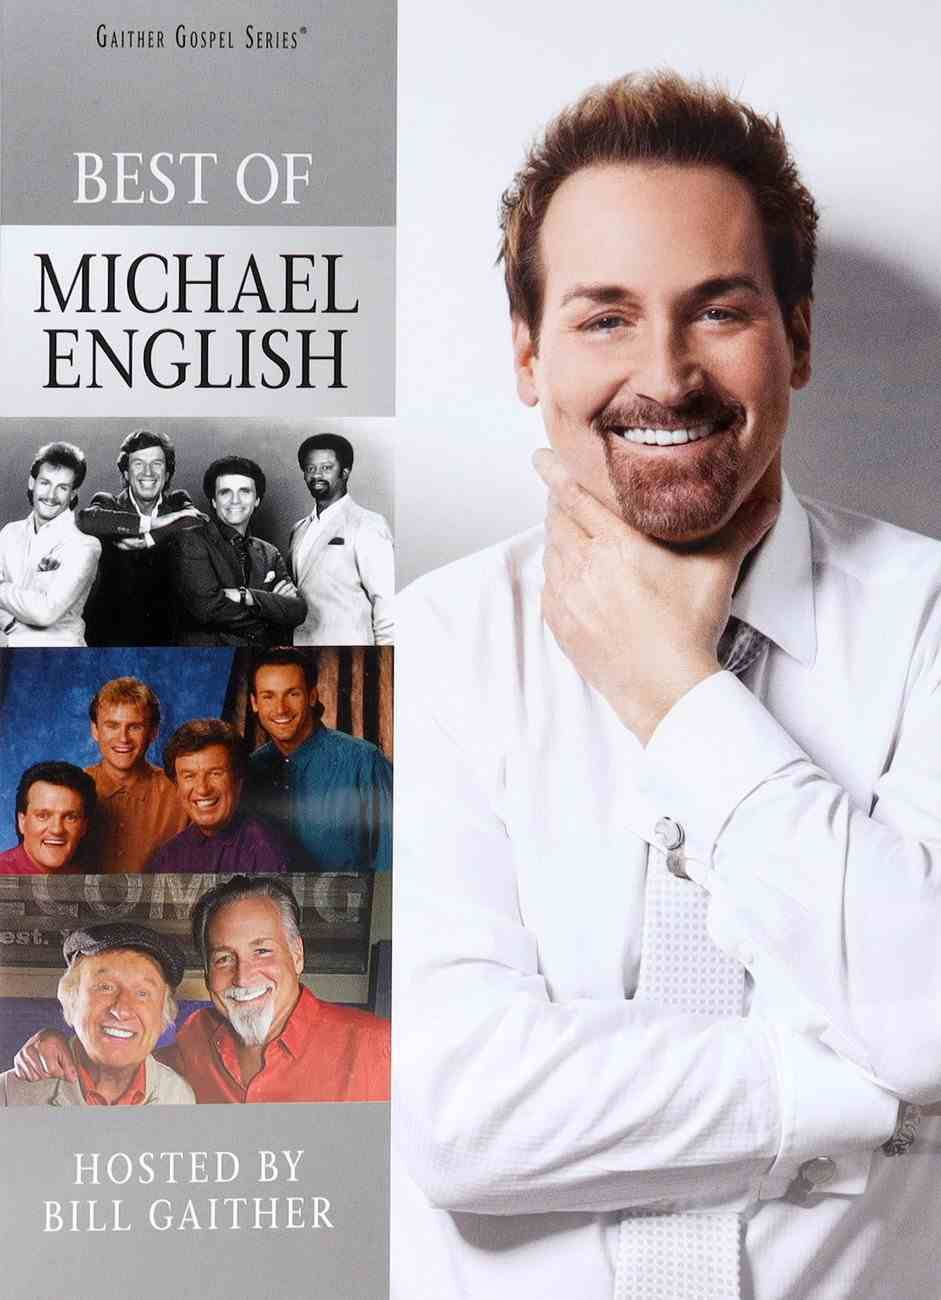 The Best of Michael English DVD